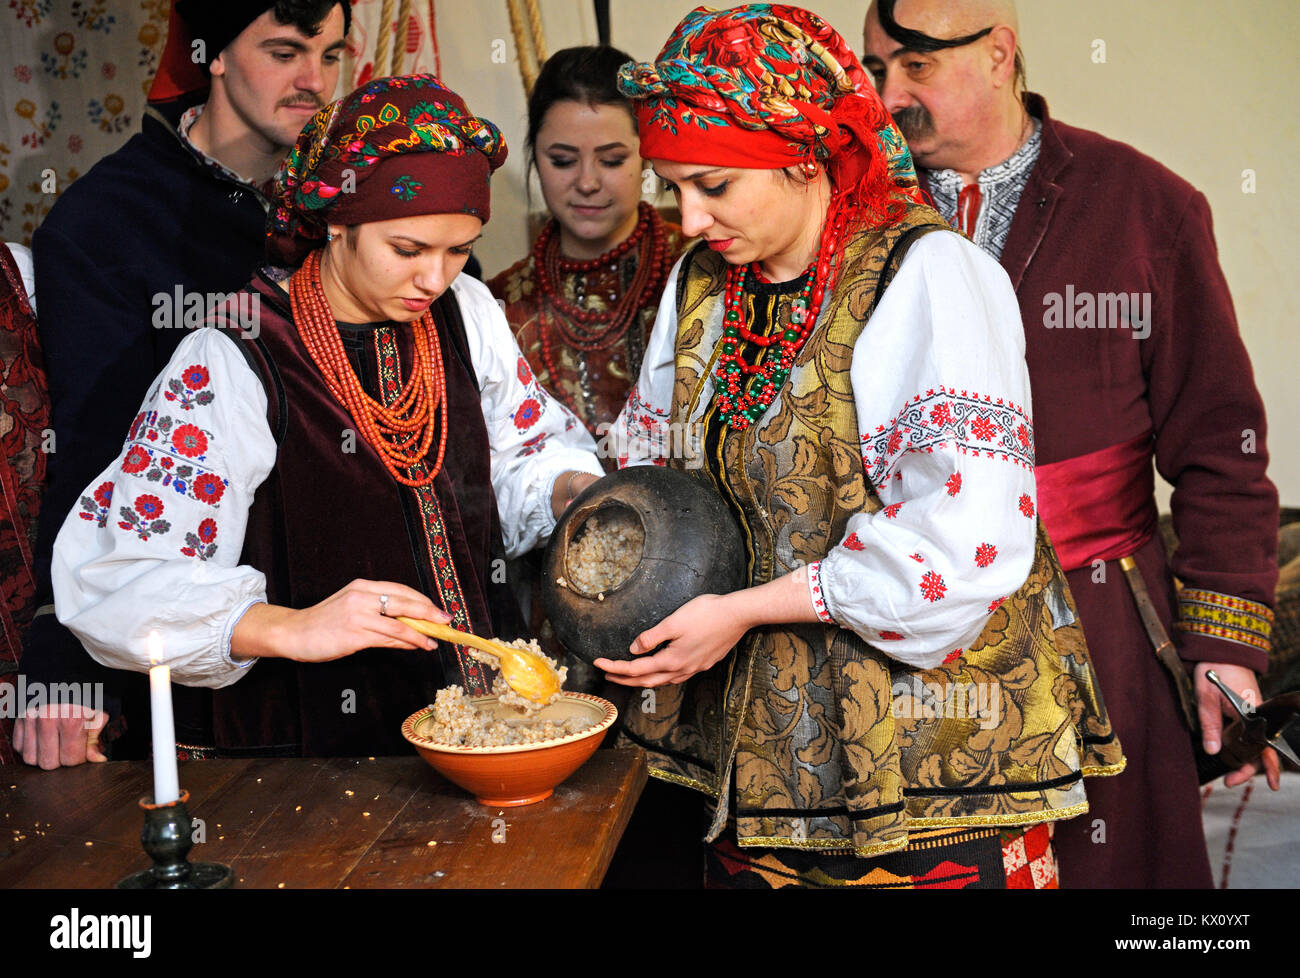 "People in native dresses prepare traditional dish ""kutia"" on Christmas Eve. Reconstruction of Ukrainian folk traditions. - Stock Image"